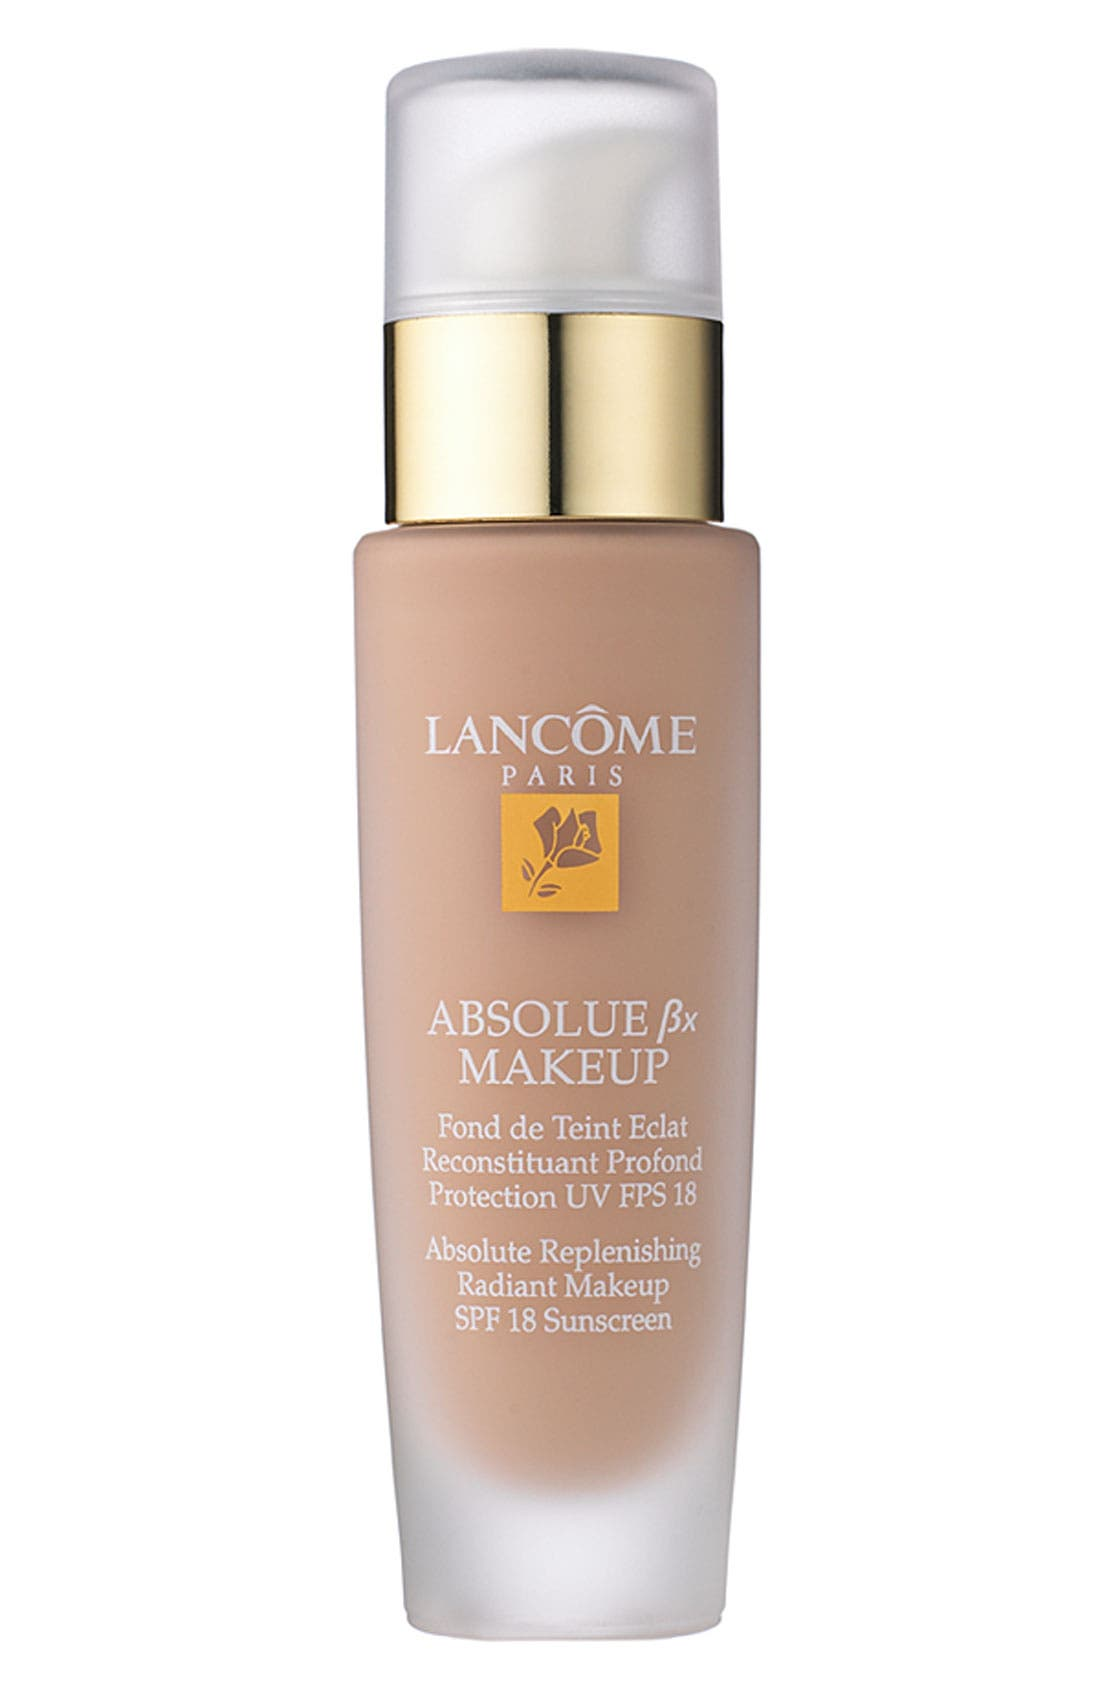 Absolue Replenishing Radiant Makeup SPF 18 Sunscreen,                             Main thumbnail 1, color,                             ABSOLUTE ALMOND 310 (C)